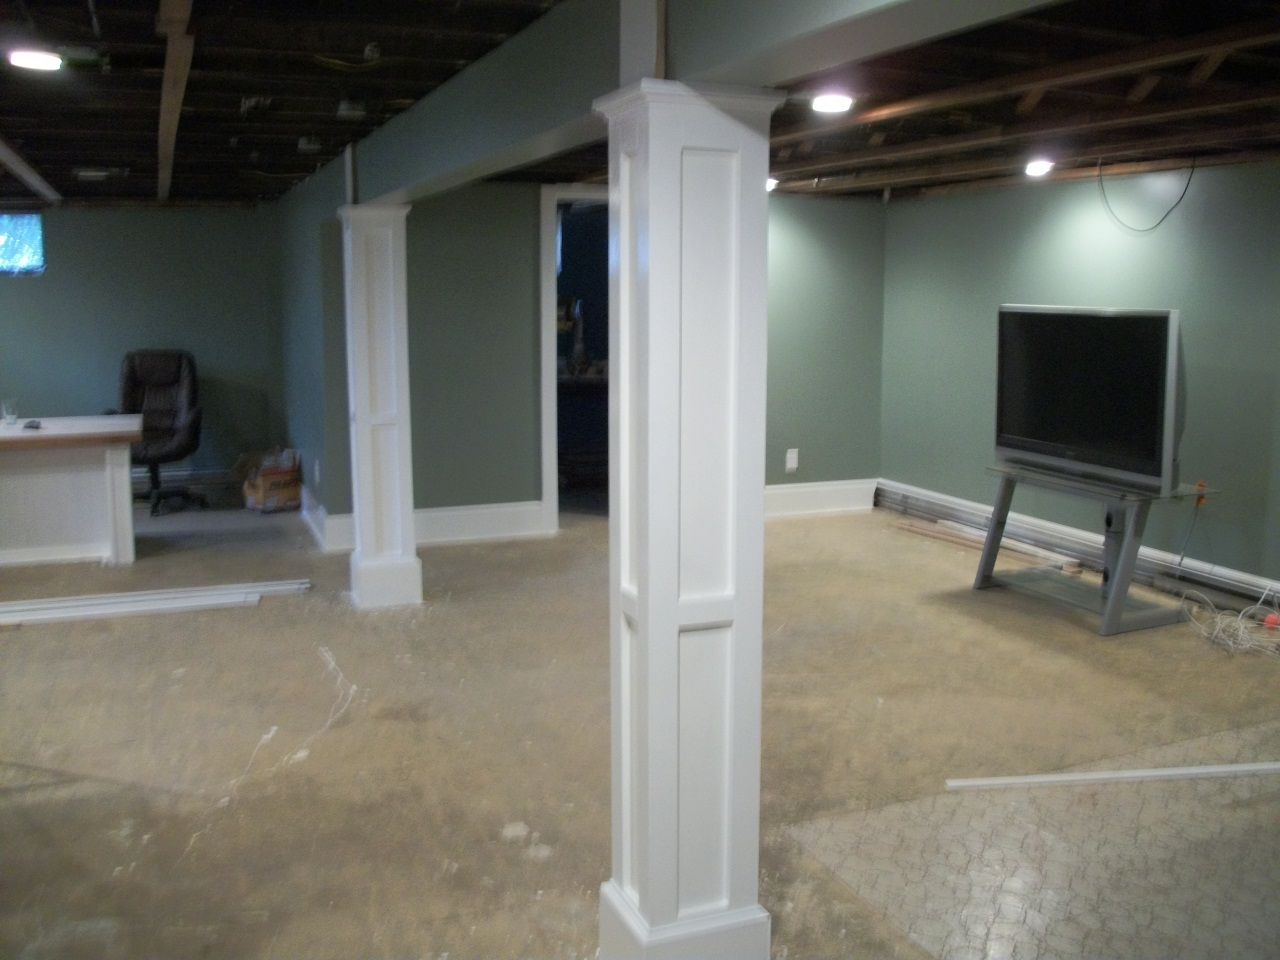 basement apartment ideas   posts remodeling a basement family room 4  remodeling a basement. basement apartment ideas   posts remodeling a basement family room